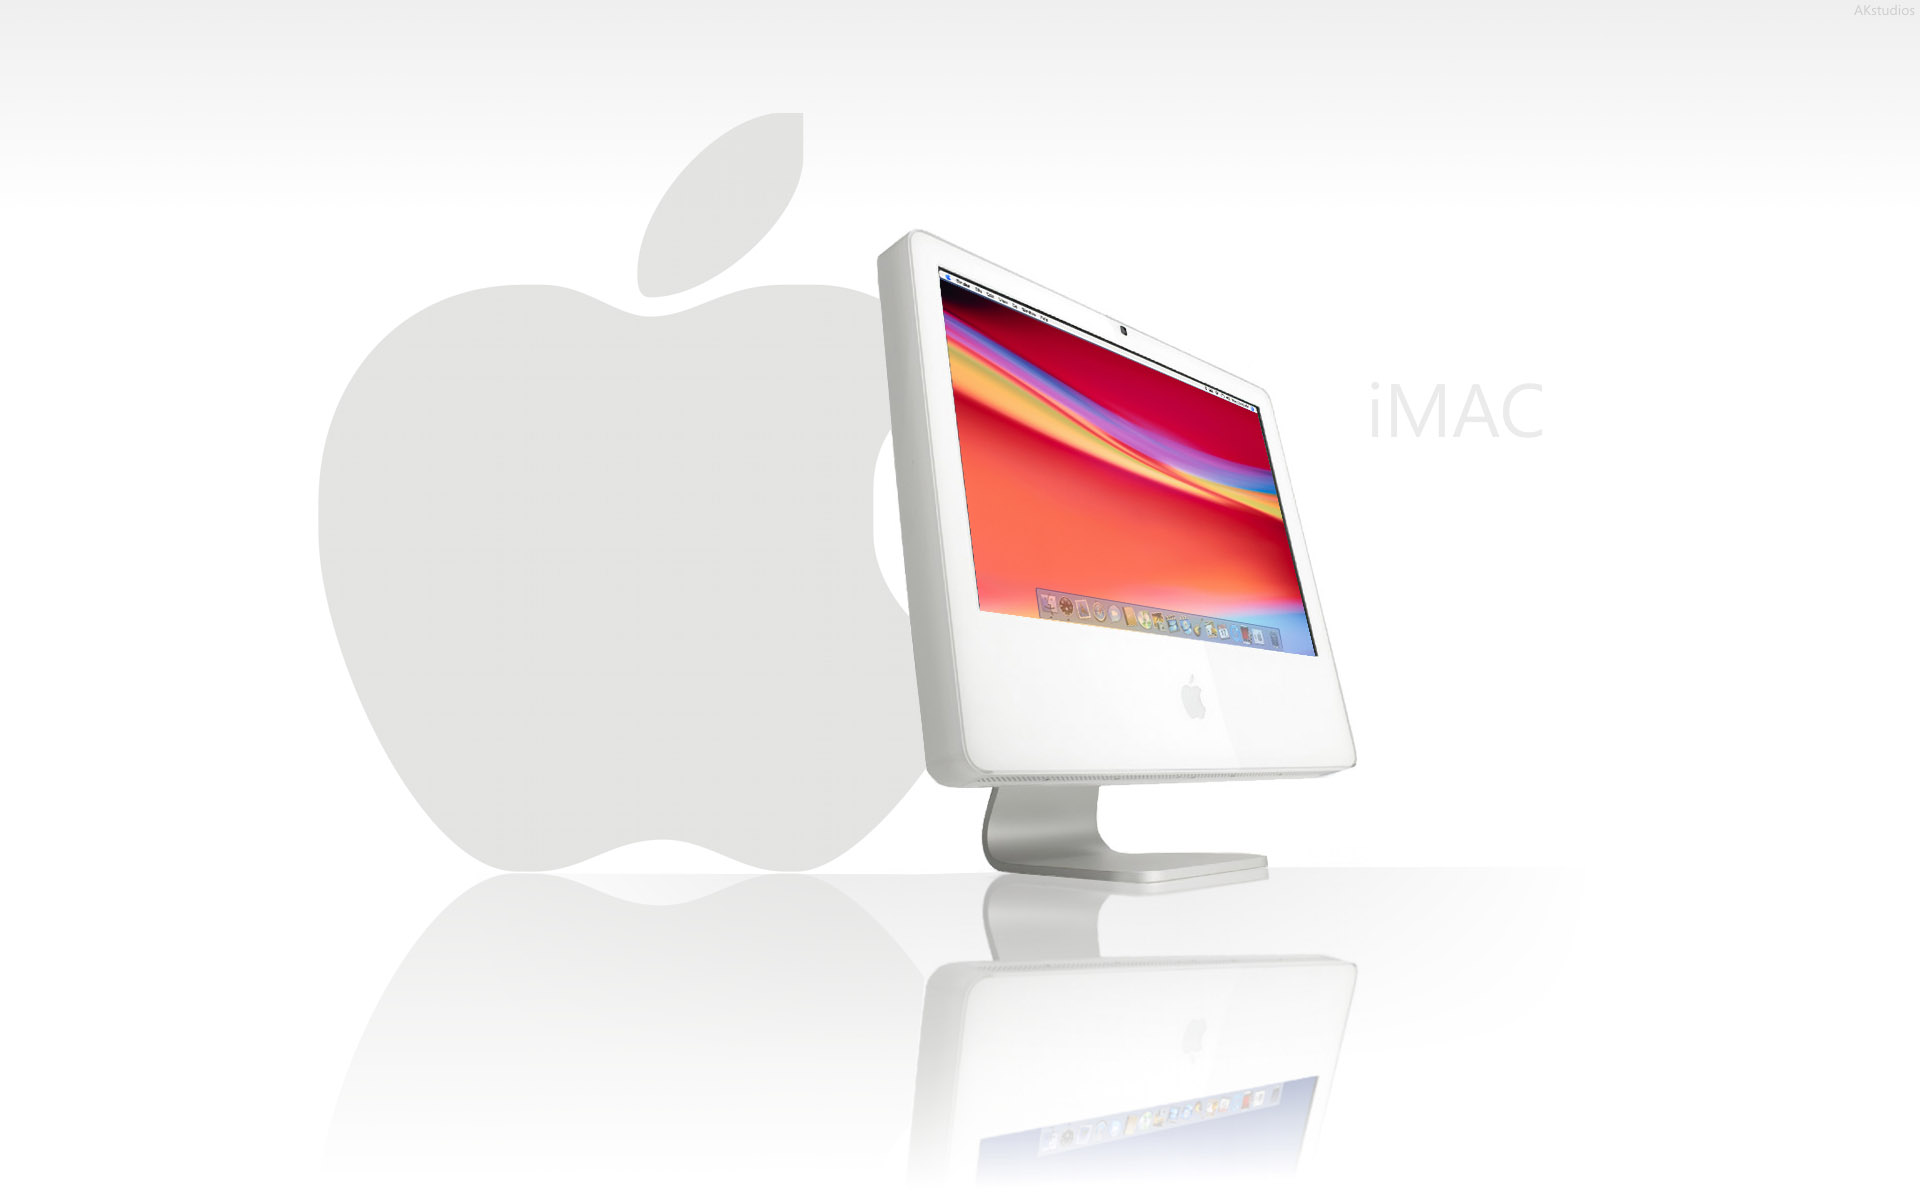 HD Apple wallpaper 18677